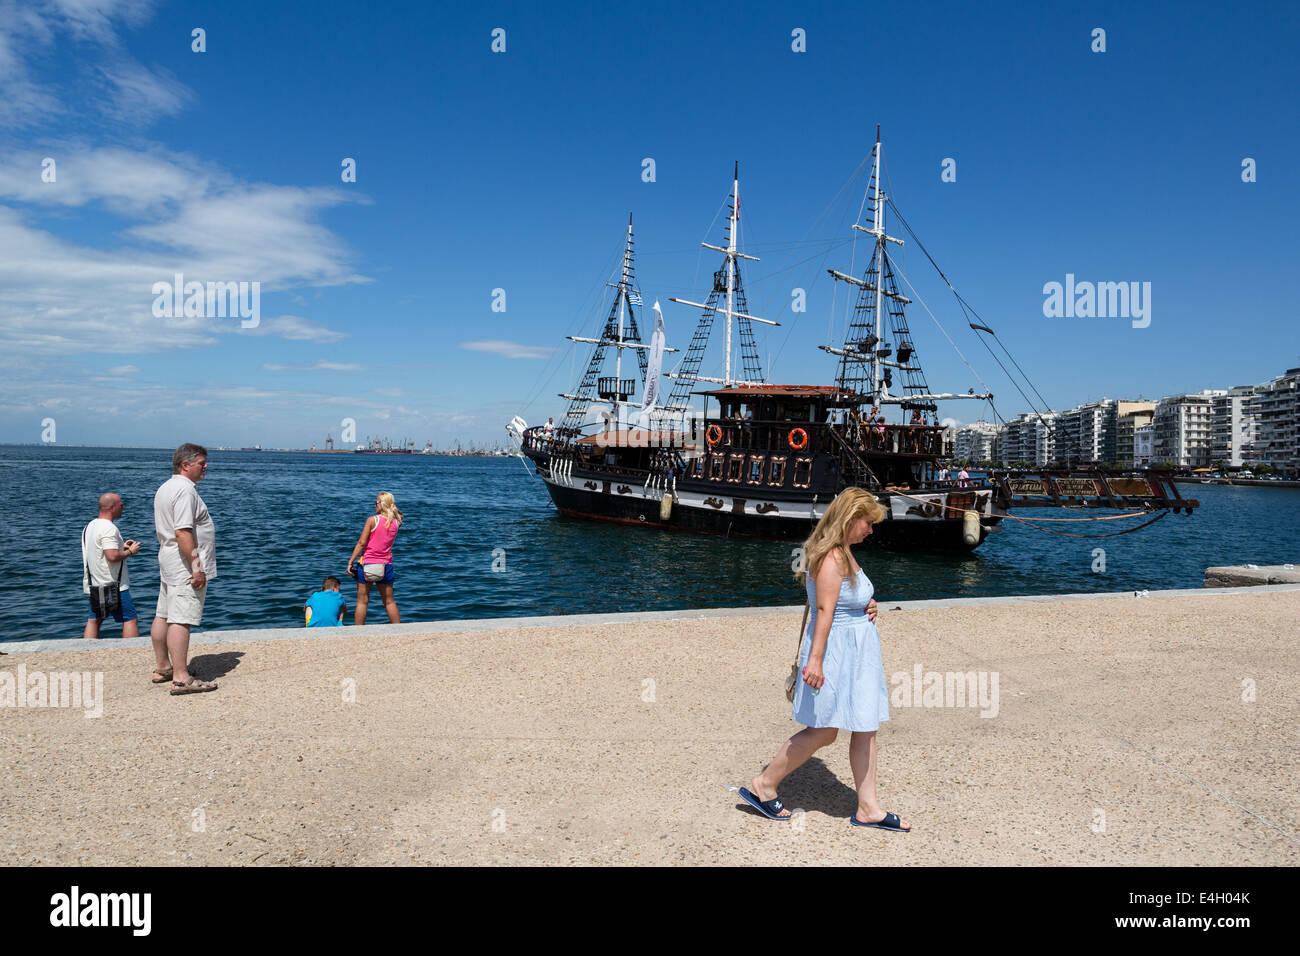 Thessaloniki, Greece. 11th July 2014. Tourists walk at the seafront of Thessaloniki, Greece. The Association of - Stock Image